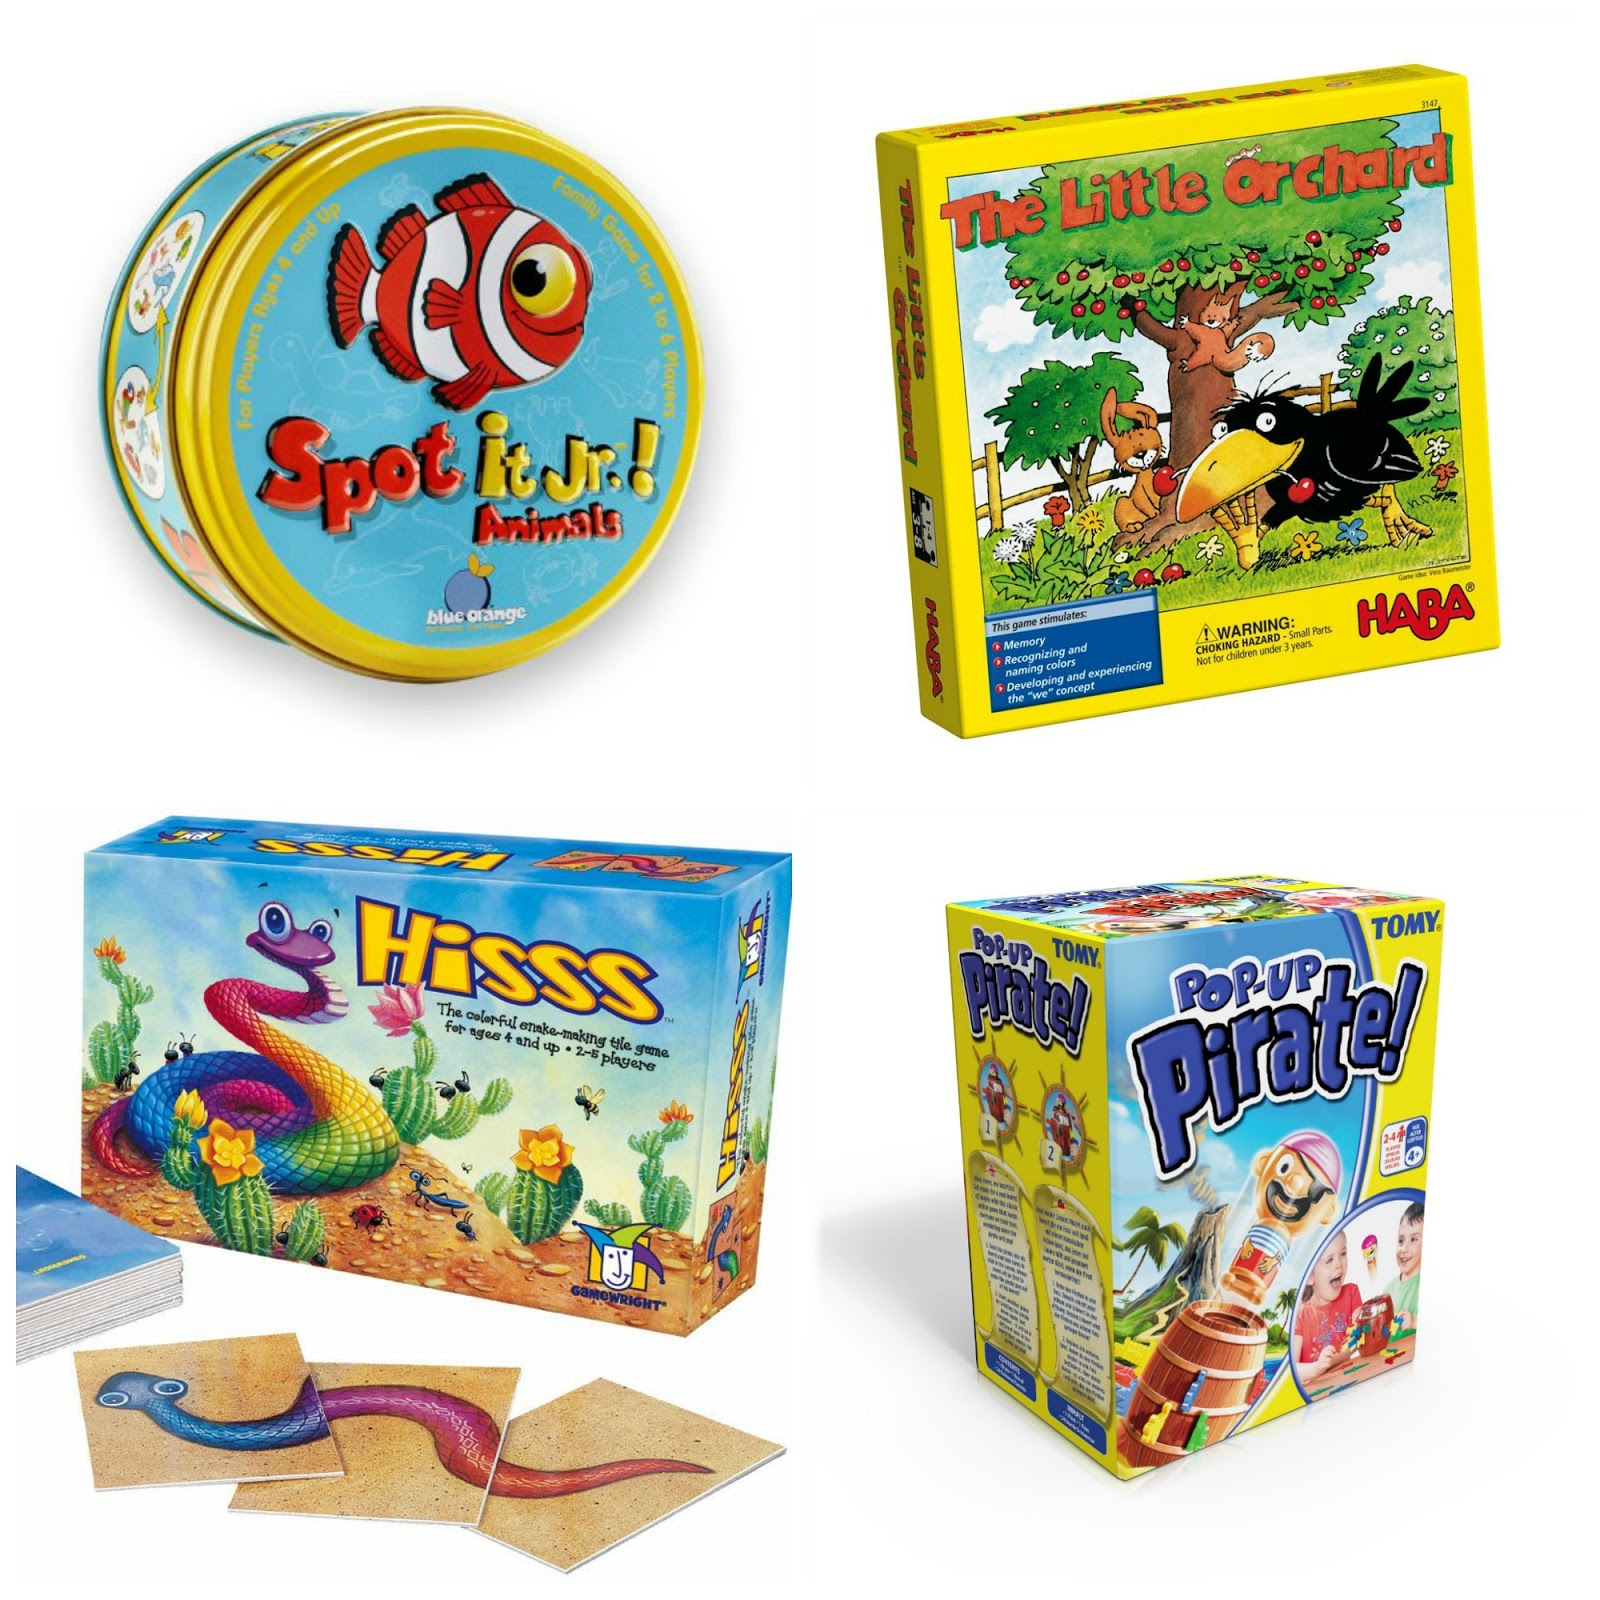 fountains of home Great Games for Little People Games to Start